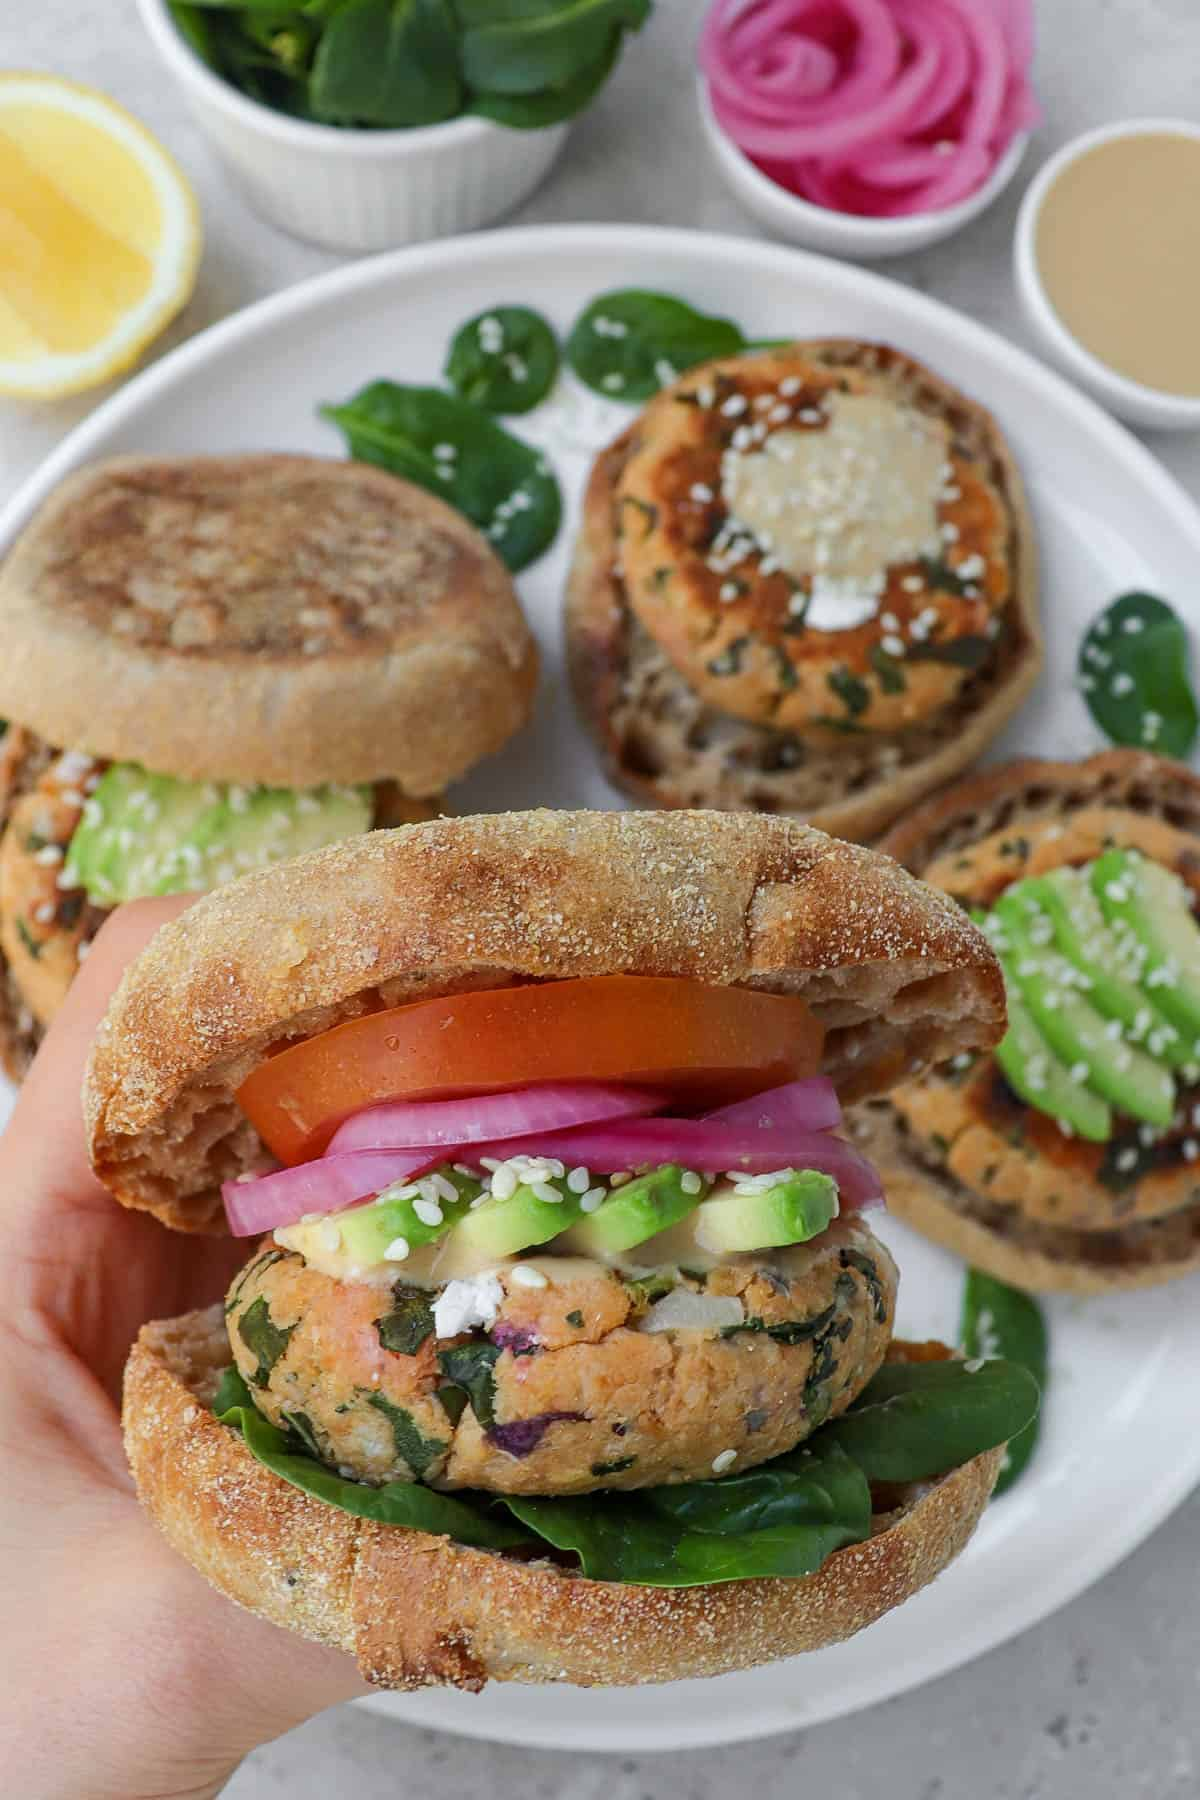 Holding salmon patty English muffin burger in hand. Topped with avocado, red pickled onions and tomato.